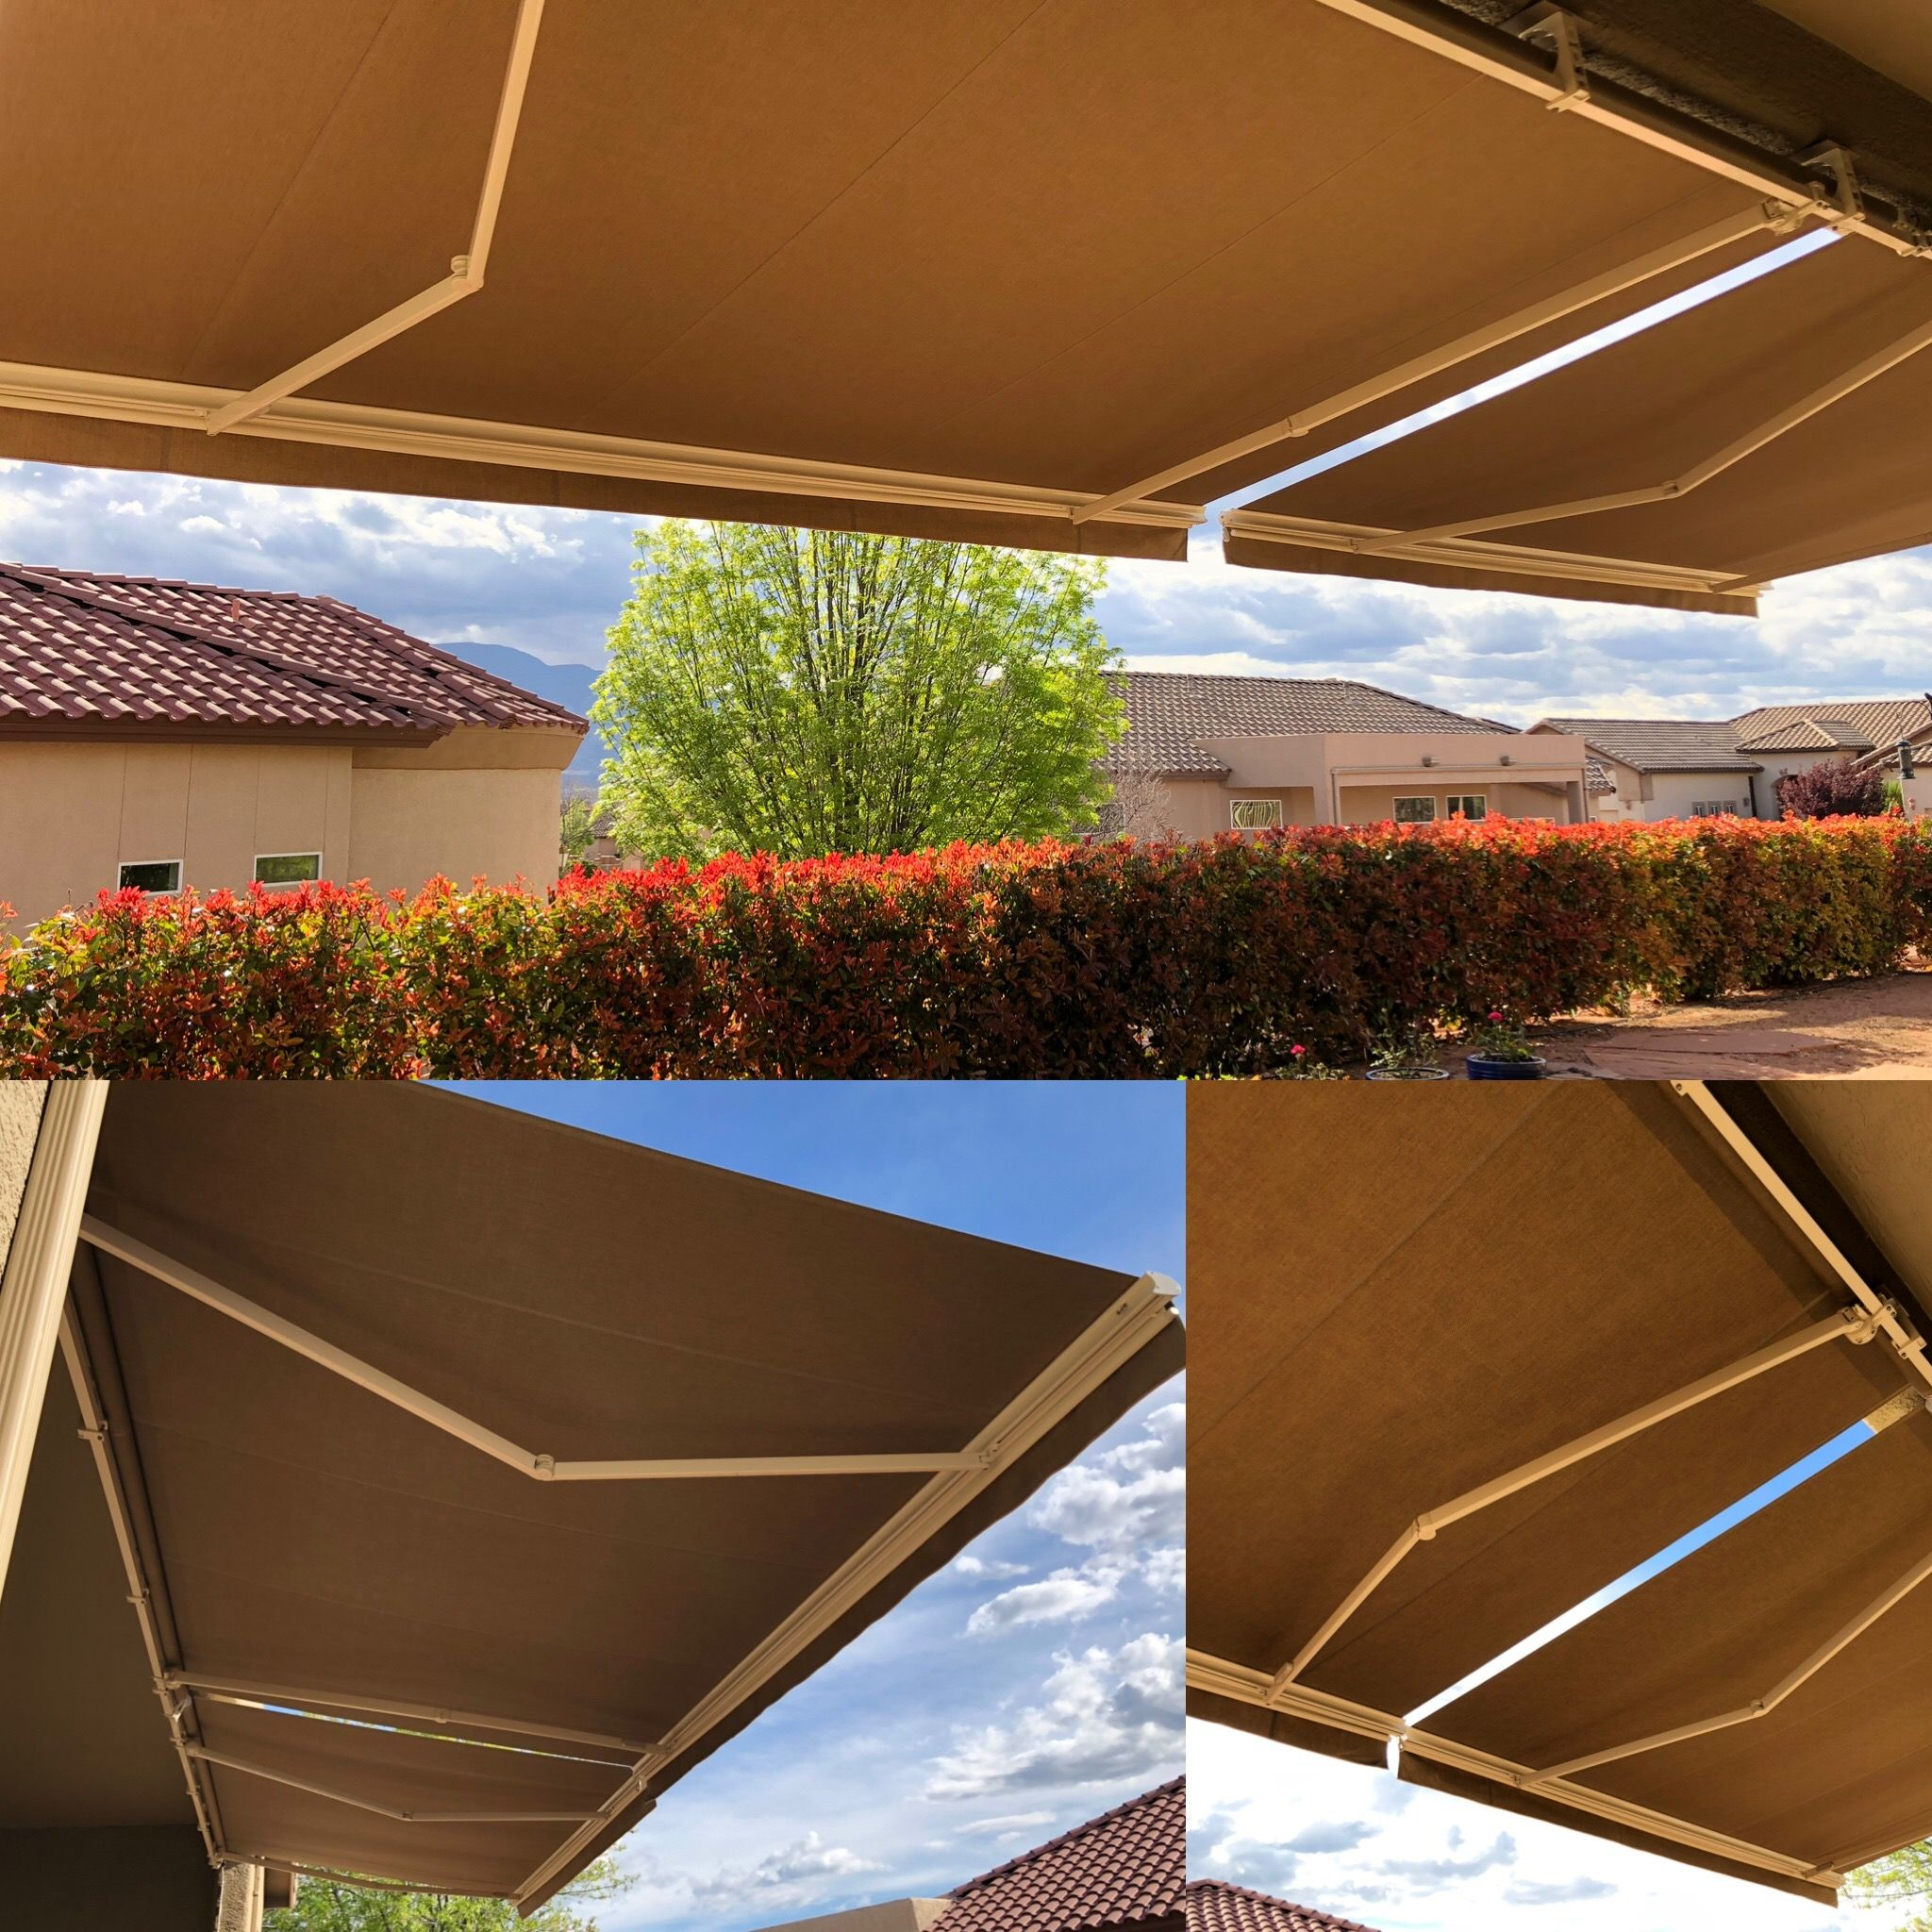 Patio Shade Solutions Retractable Awnings Patio Shade Retractable Awning Patio